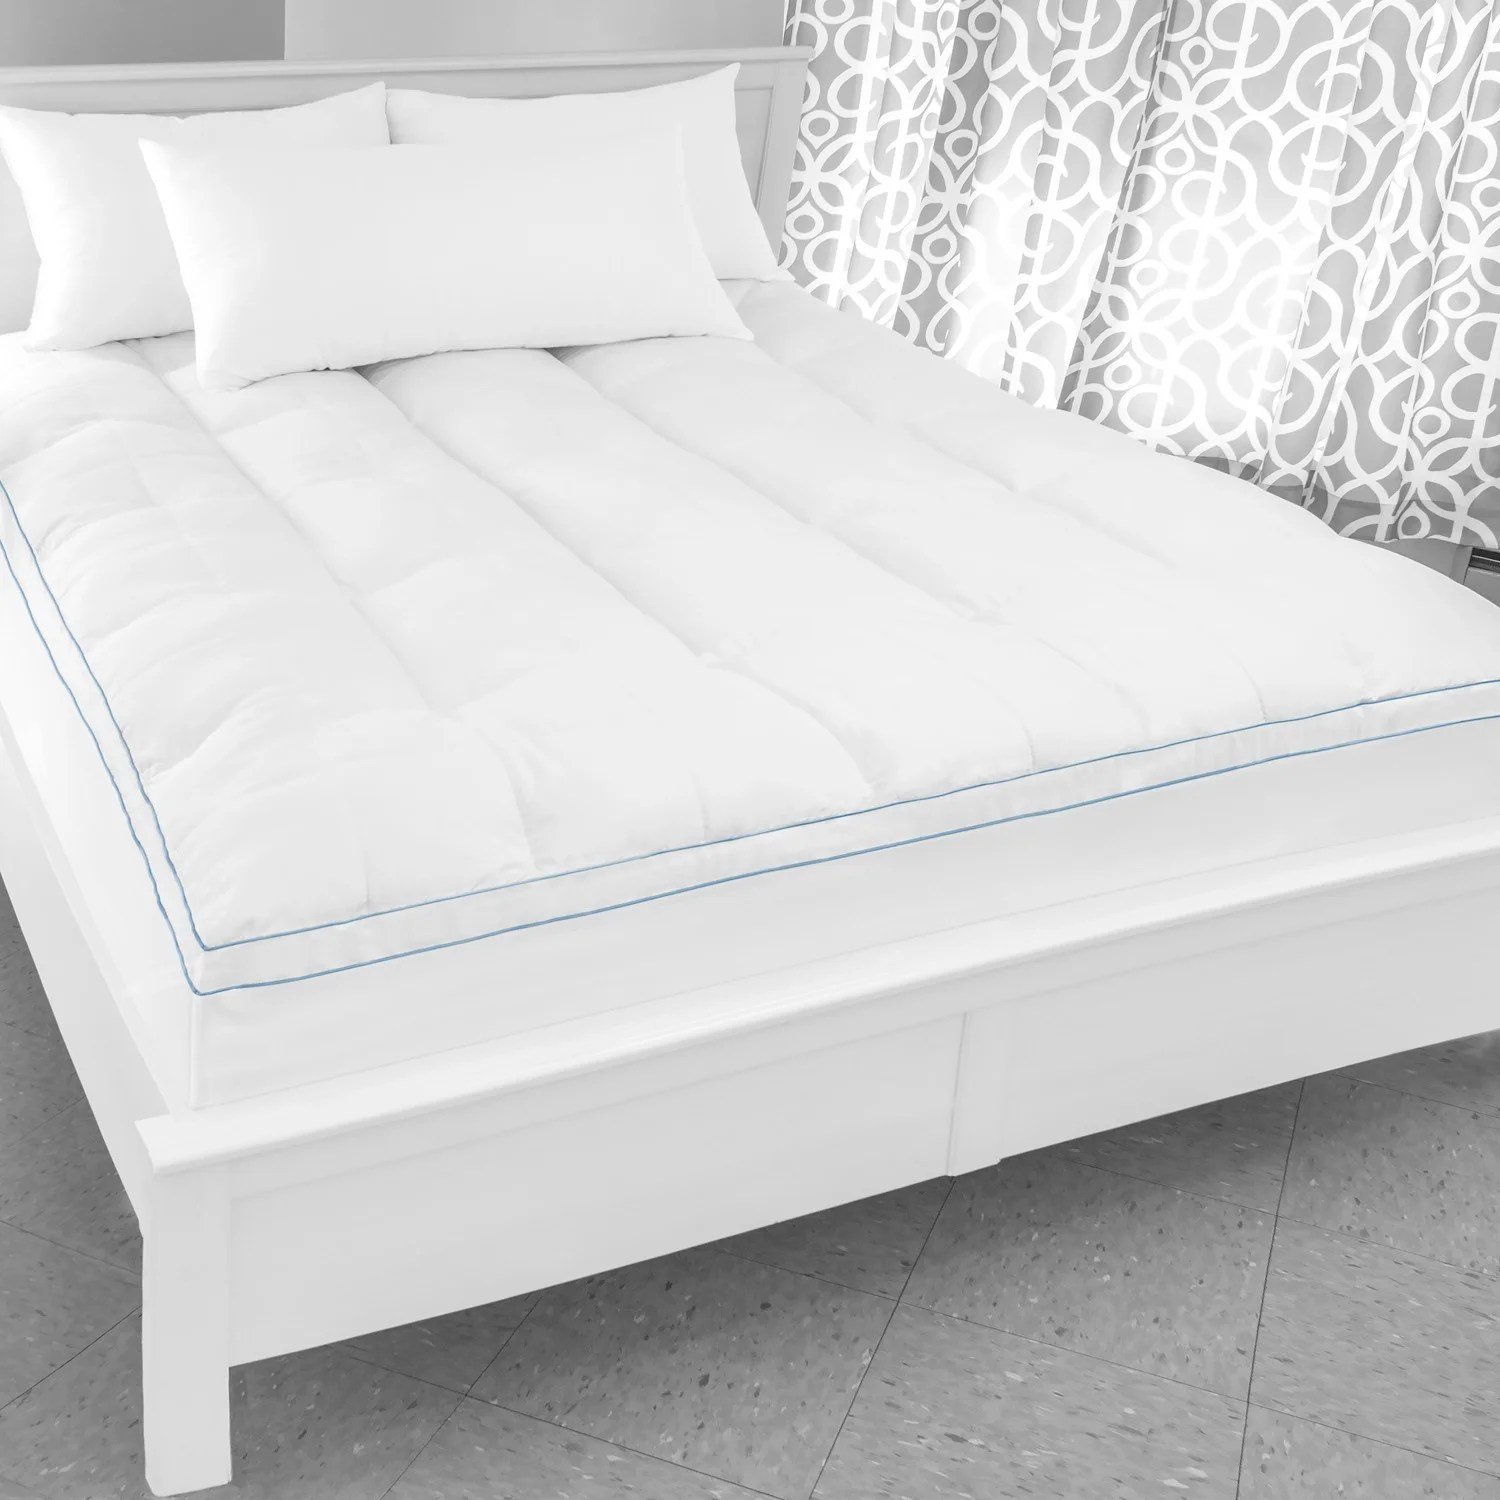 Tempurpedic Pillow Tops Swisslux Supreme Memory Foam And Fiber Bed Topper With Skirt